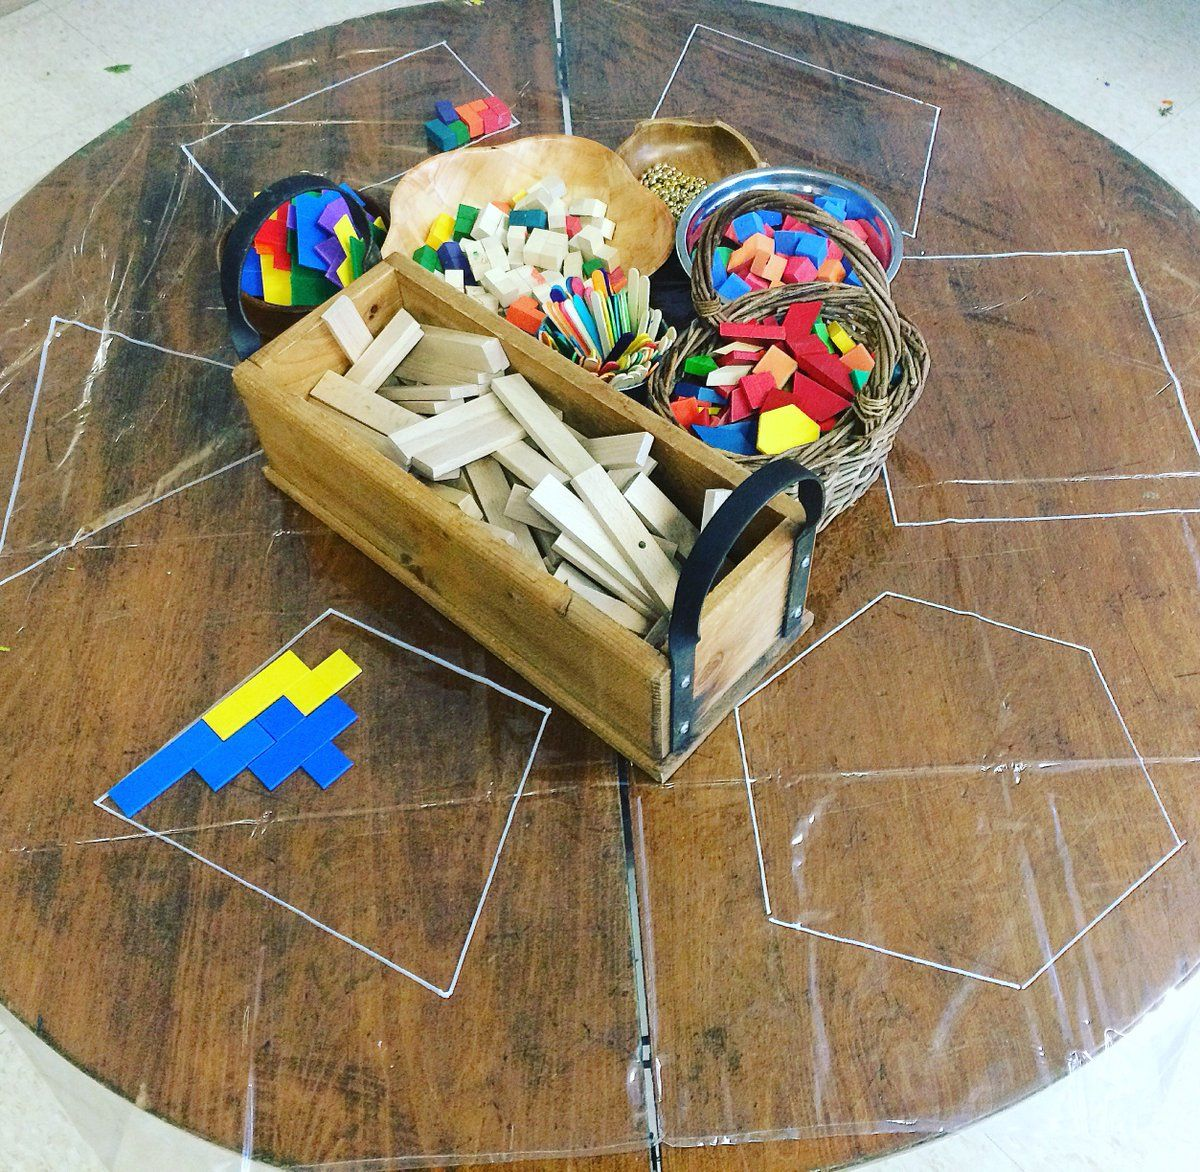 10 Playful Spatial Reasoning Provocations